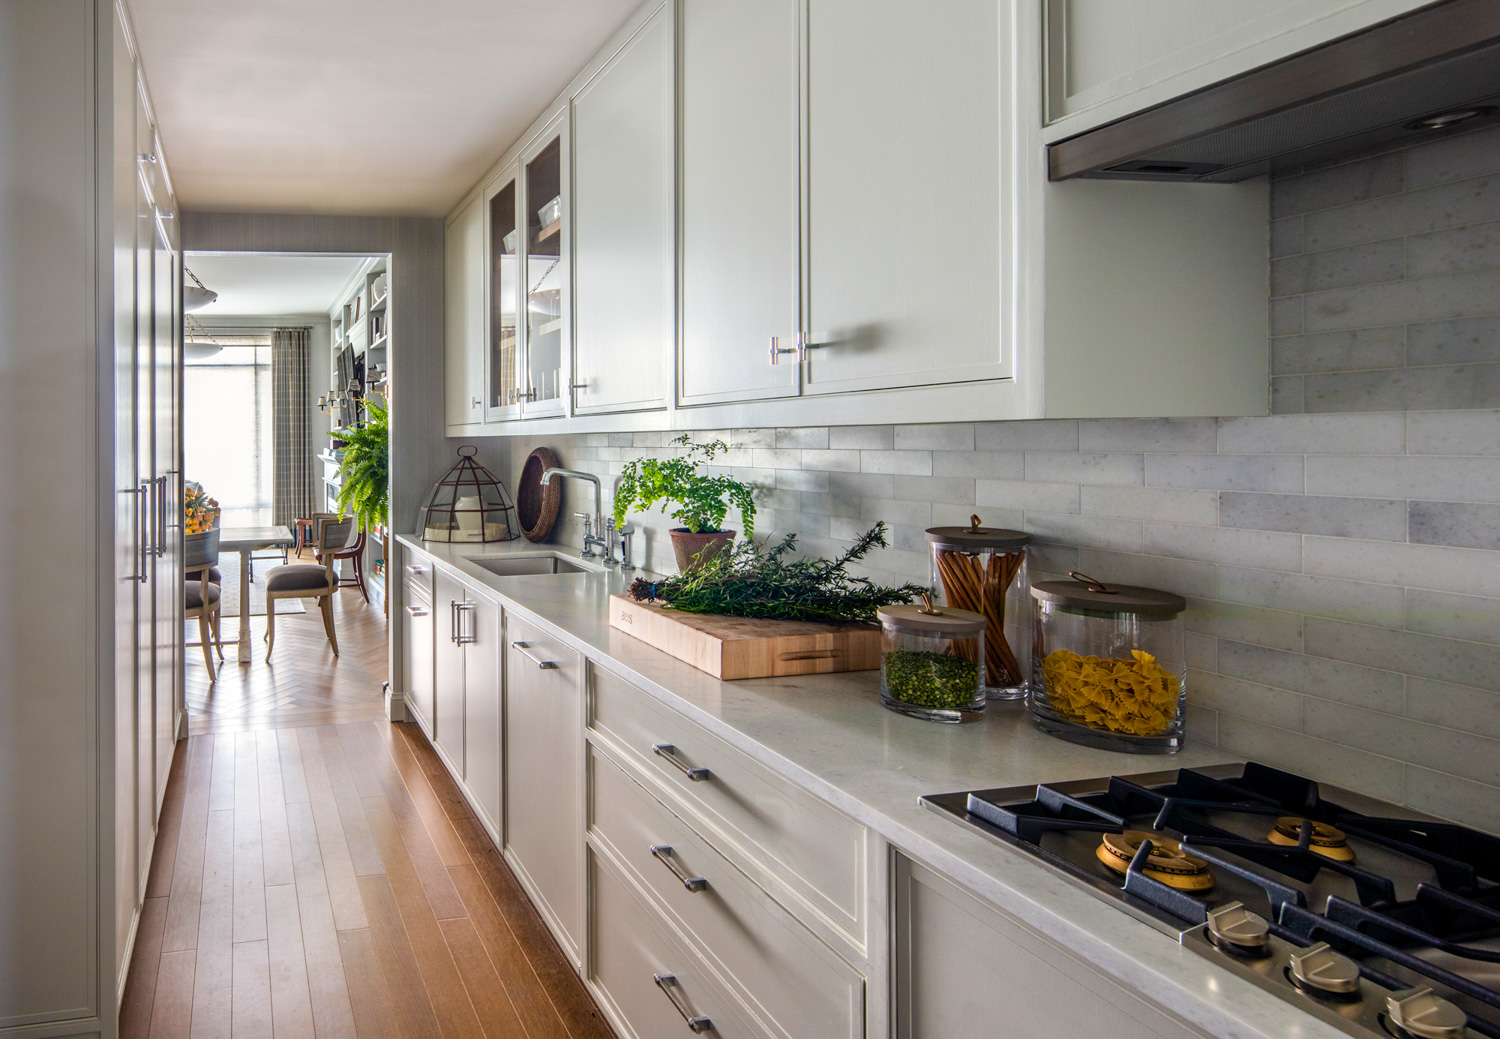 moonshine cabinetry in kitchen